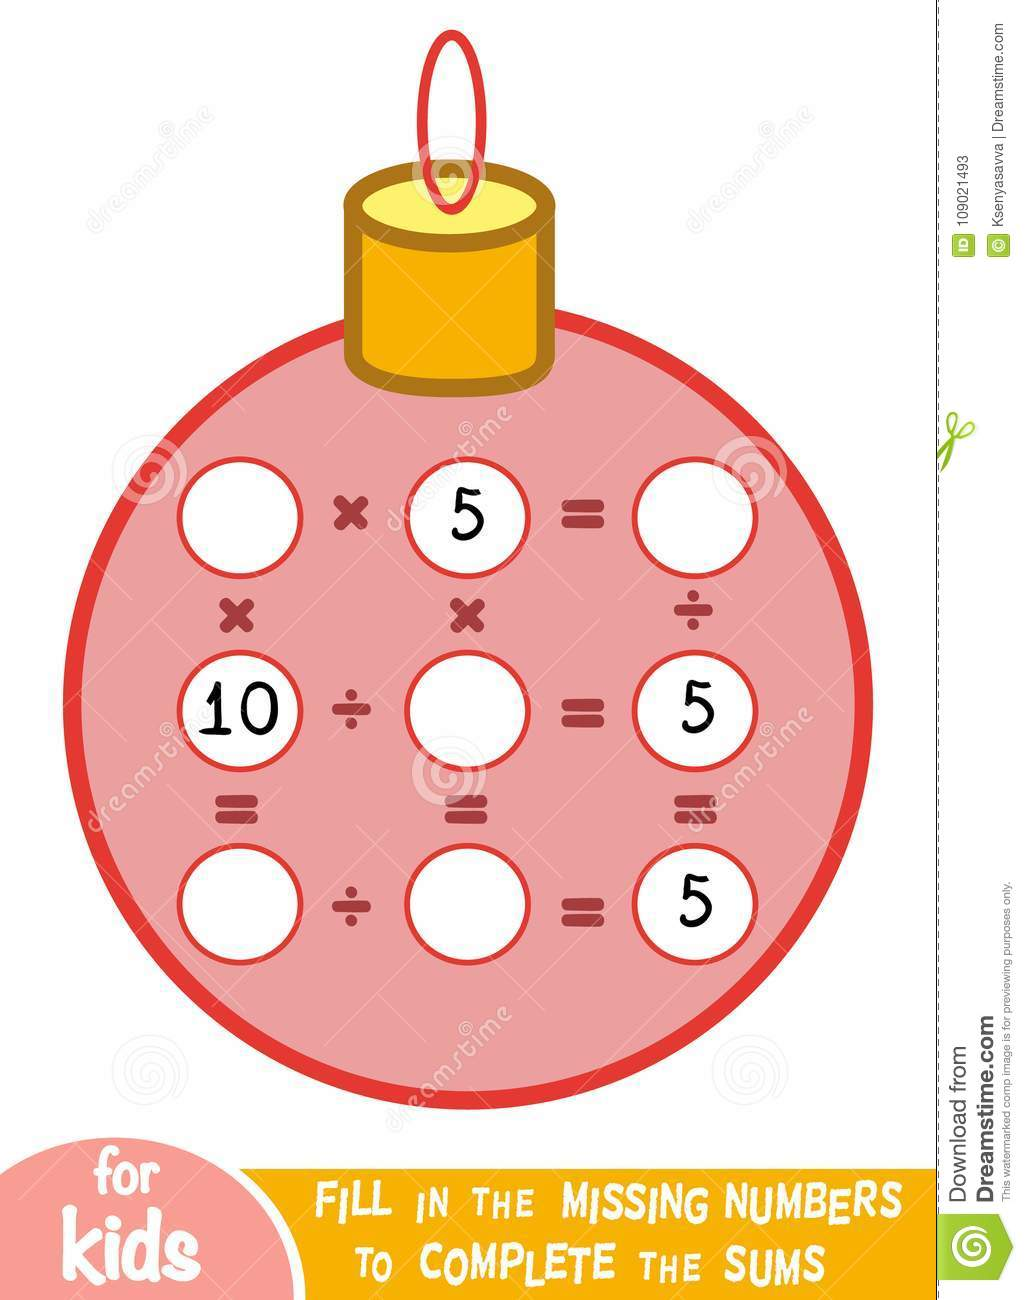 Counting Game For Children Educational A Mathematical